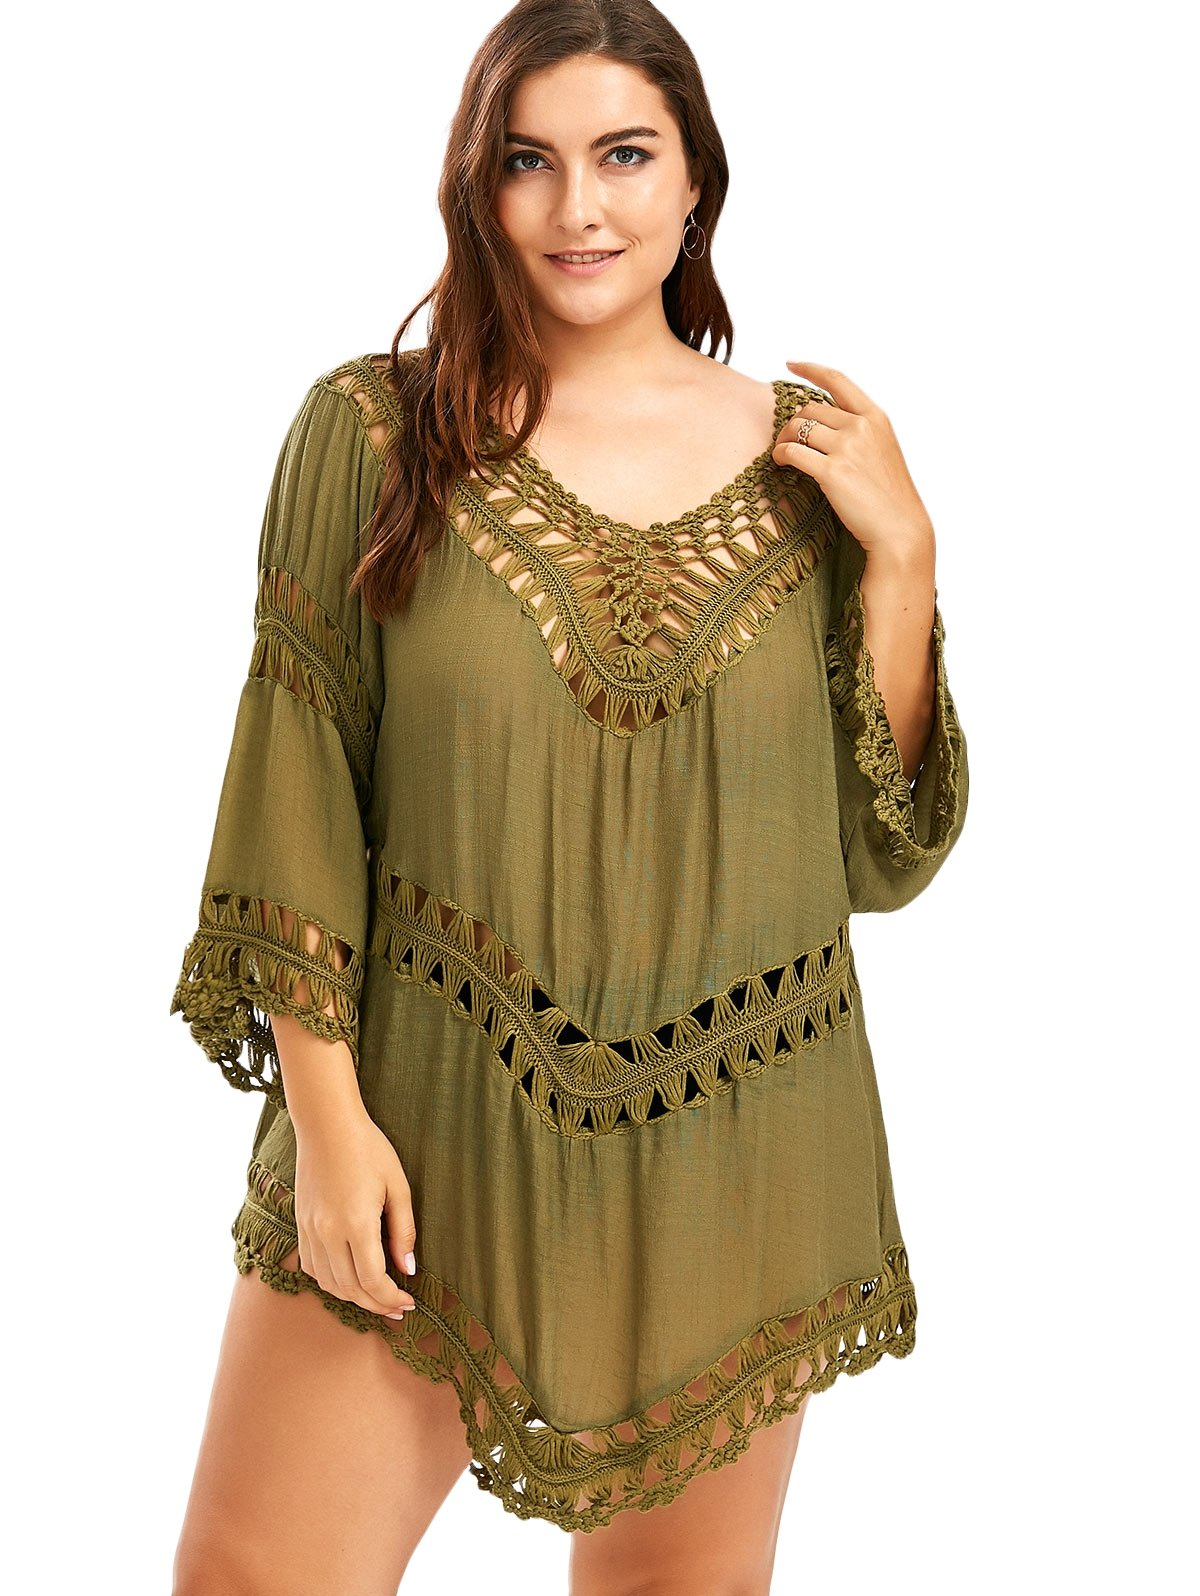 Vanbuy Women V Neck Bohemian Style Crochet Tunic Top Beach Swimsuit Coverup Blouse Shirt Z129-Army Green by Vanbuy